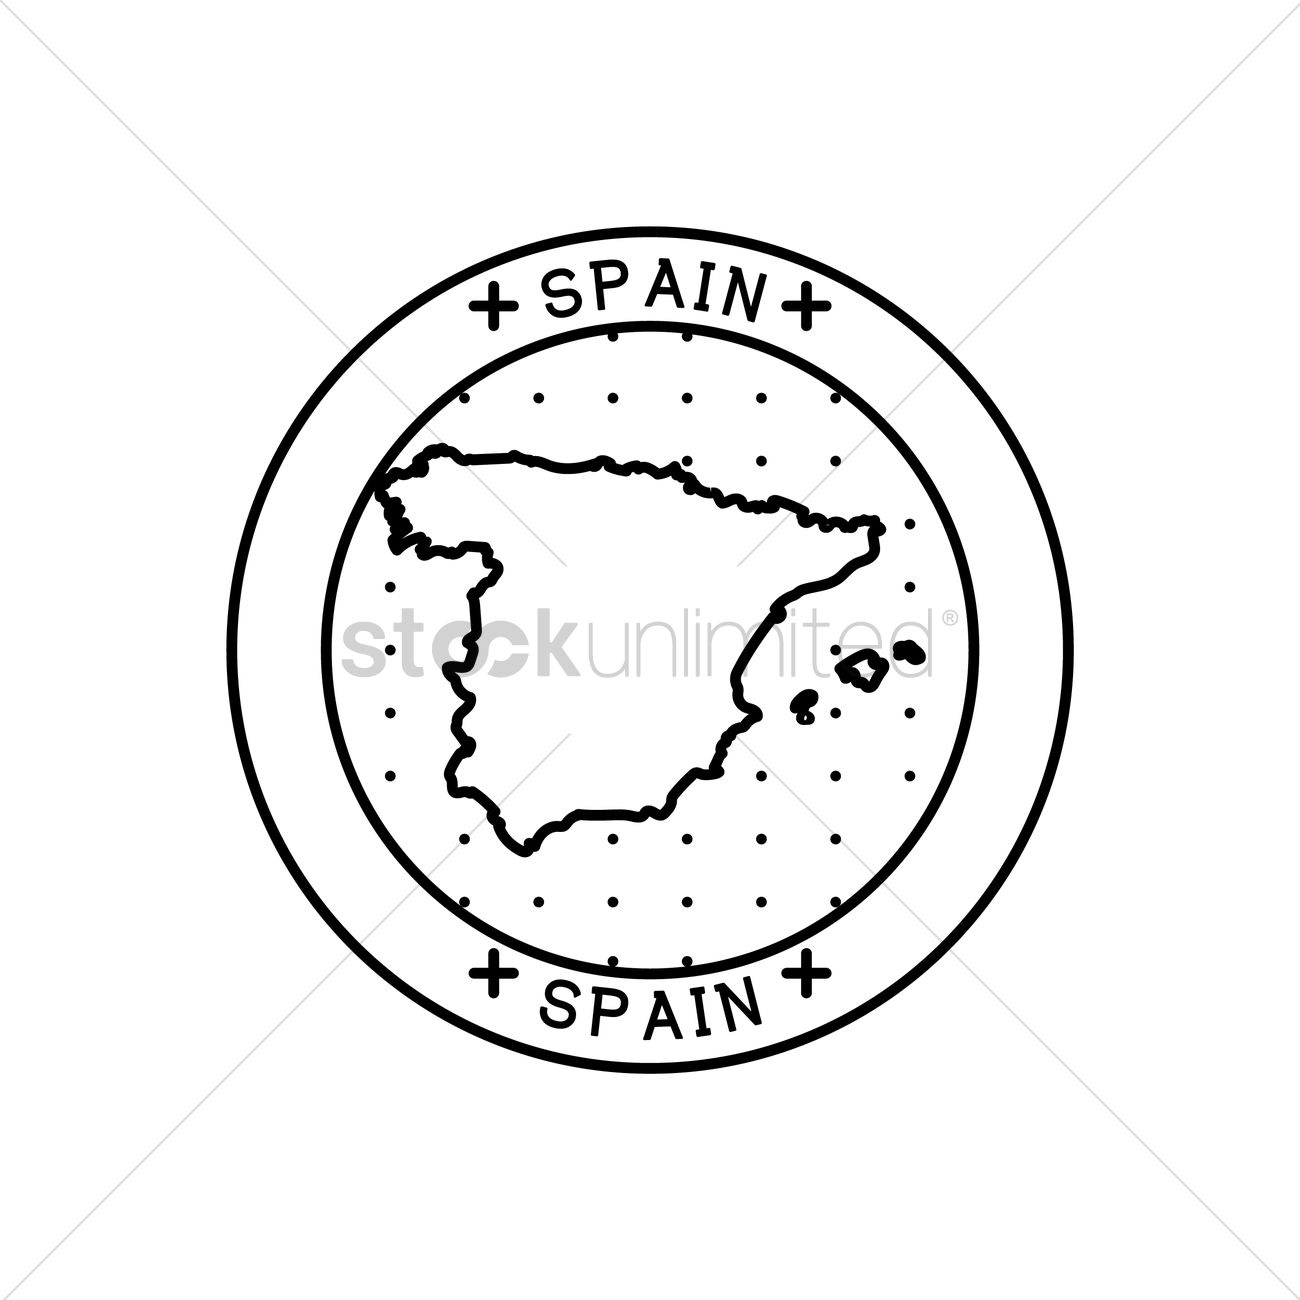 Map Of Spain To Label.Spain Map Label Vector Image 1564775 Stockunlimited